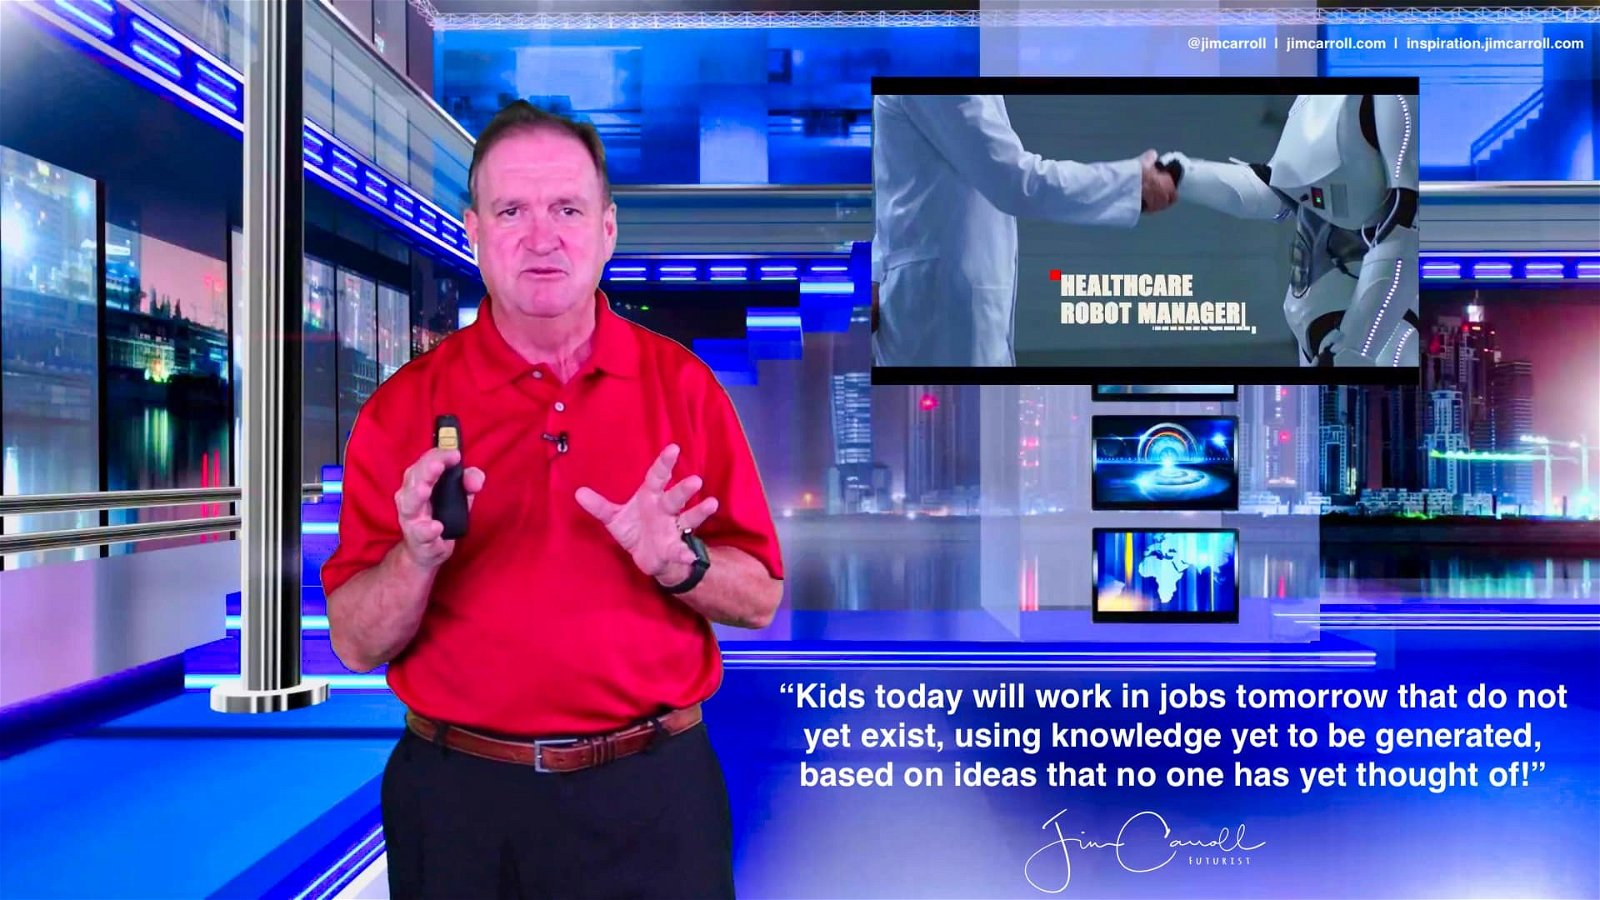 """Daily Inspiration: """"Kids today will work in jobs tomorrow that do not yet exist, using knowledge yet to be generated, based on ideas that no one has yet thought of!"""""""